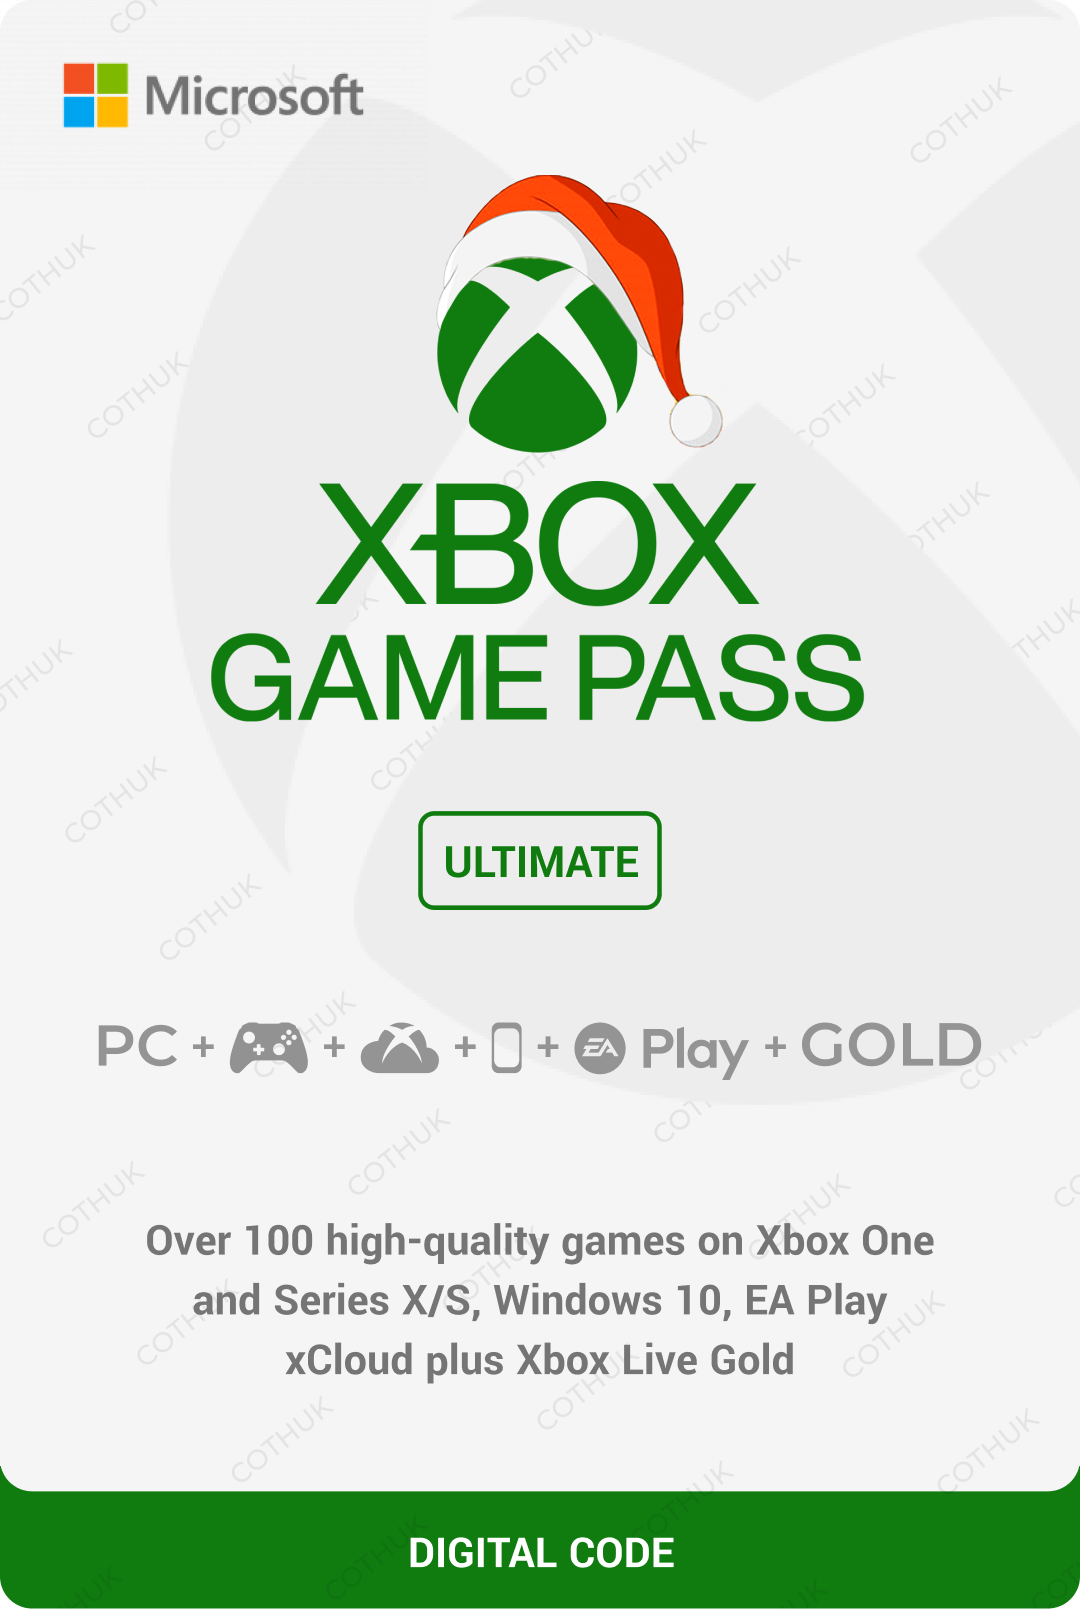 XBOX GAME PASS ULTIMATE 7 days + EA Play + Renewal